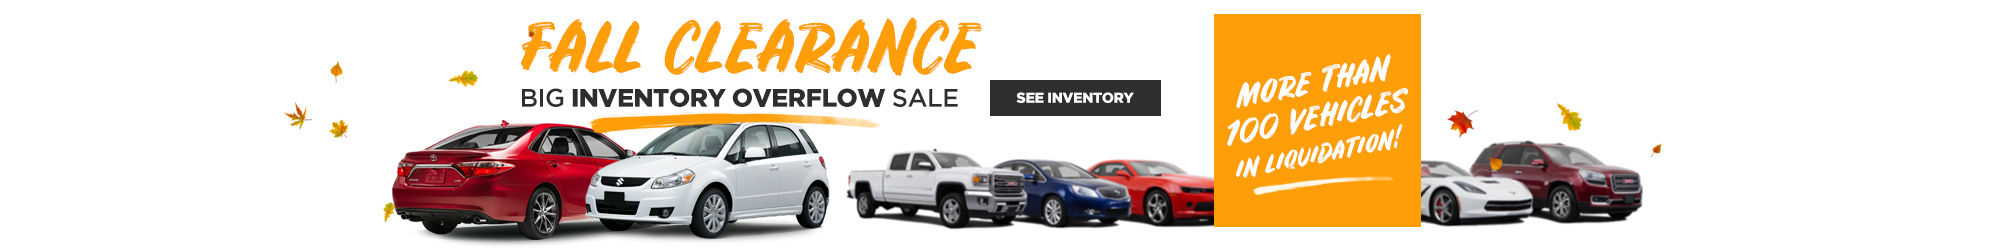 FALL CLEARANCE big inventory overflow sale